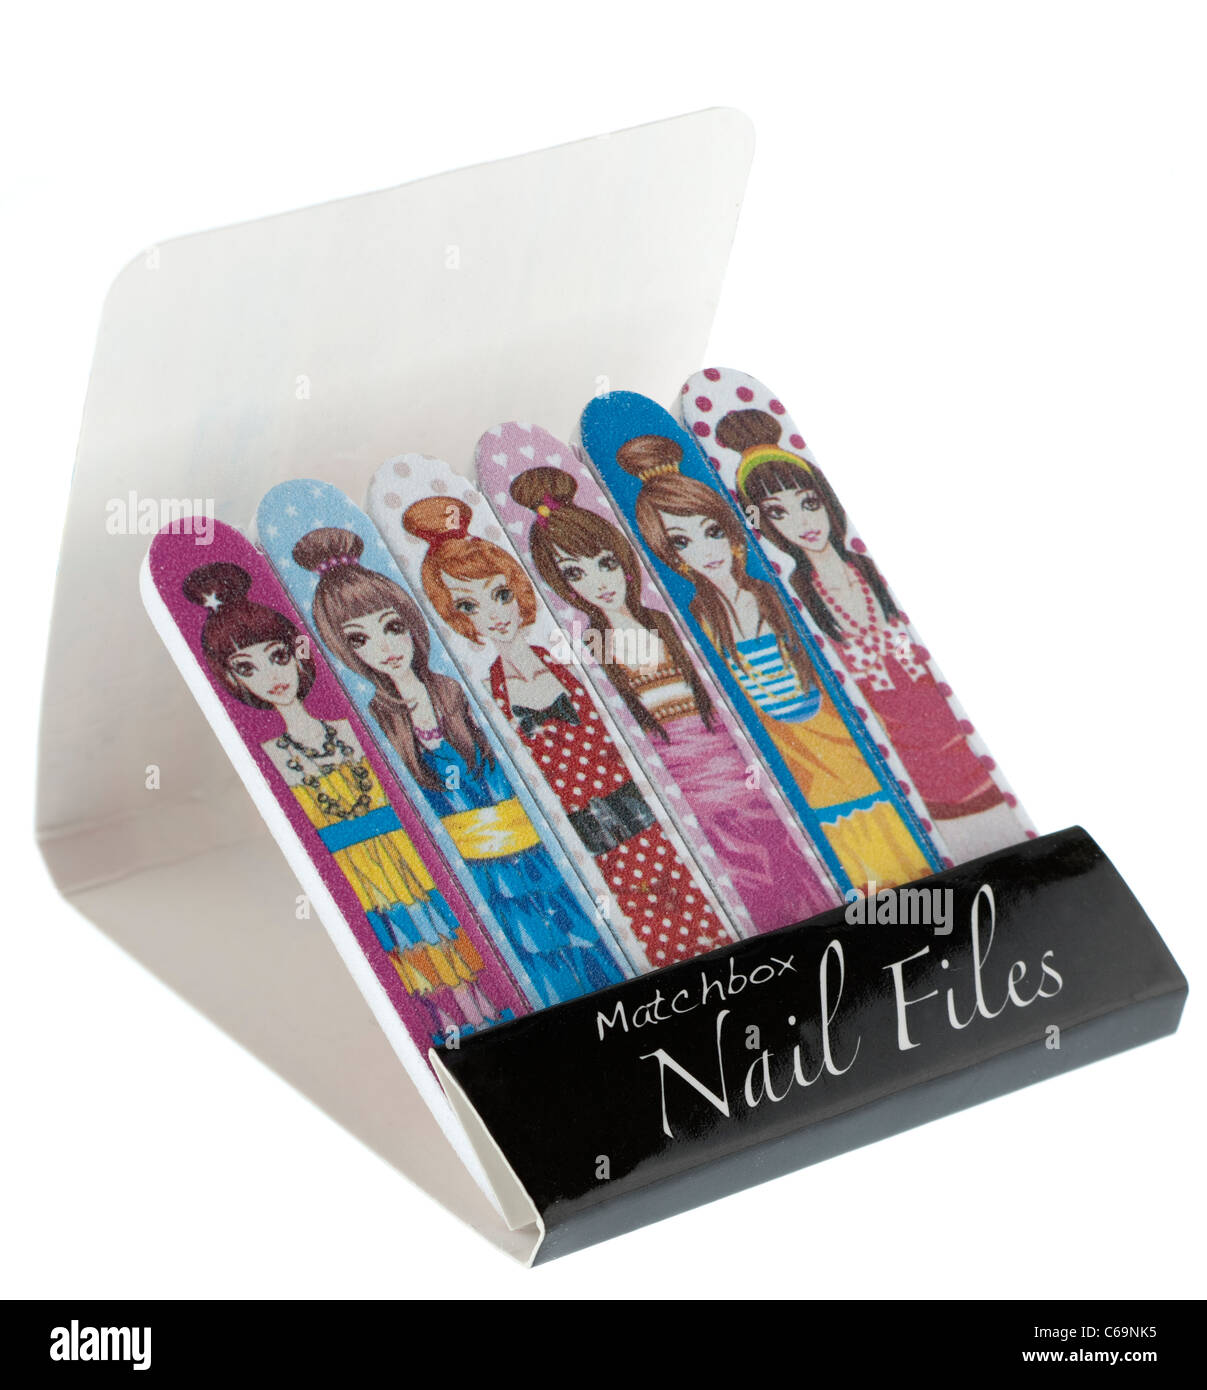 Matchbox type style of small patterned nail files - Stock Image